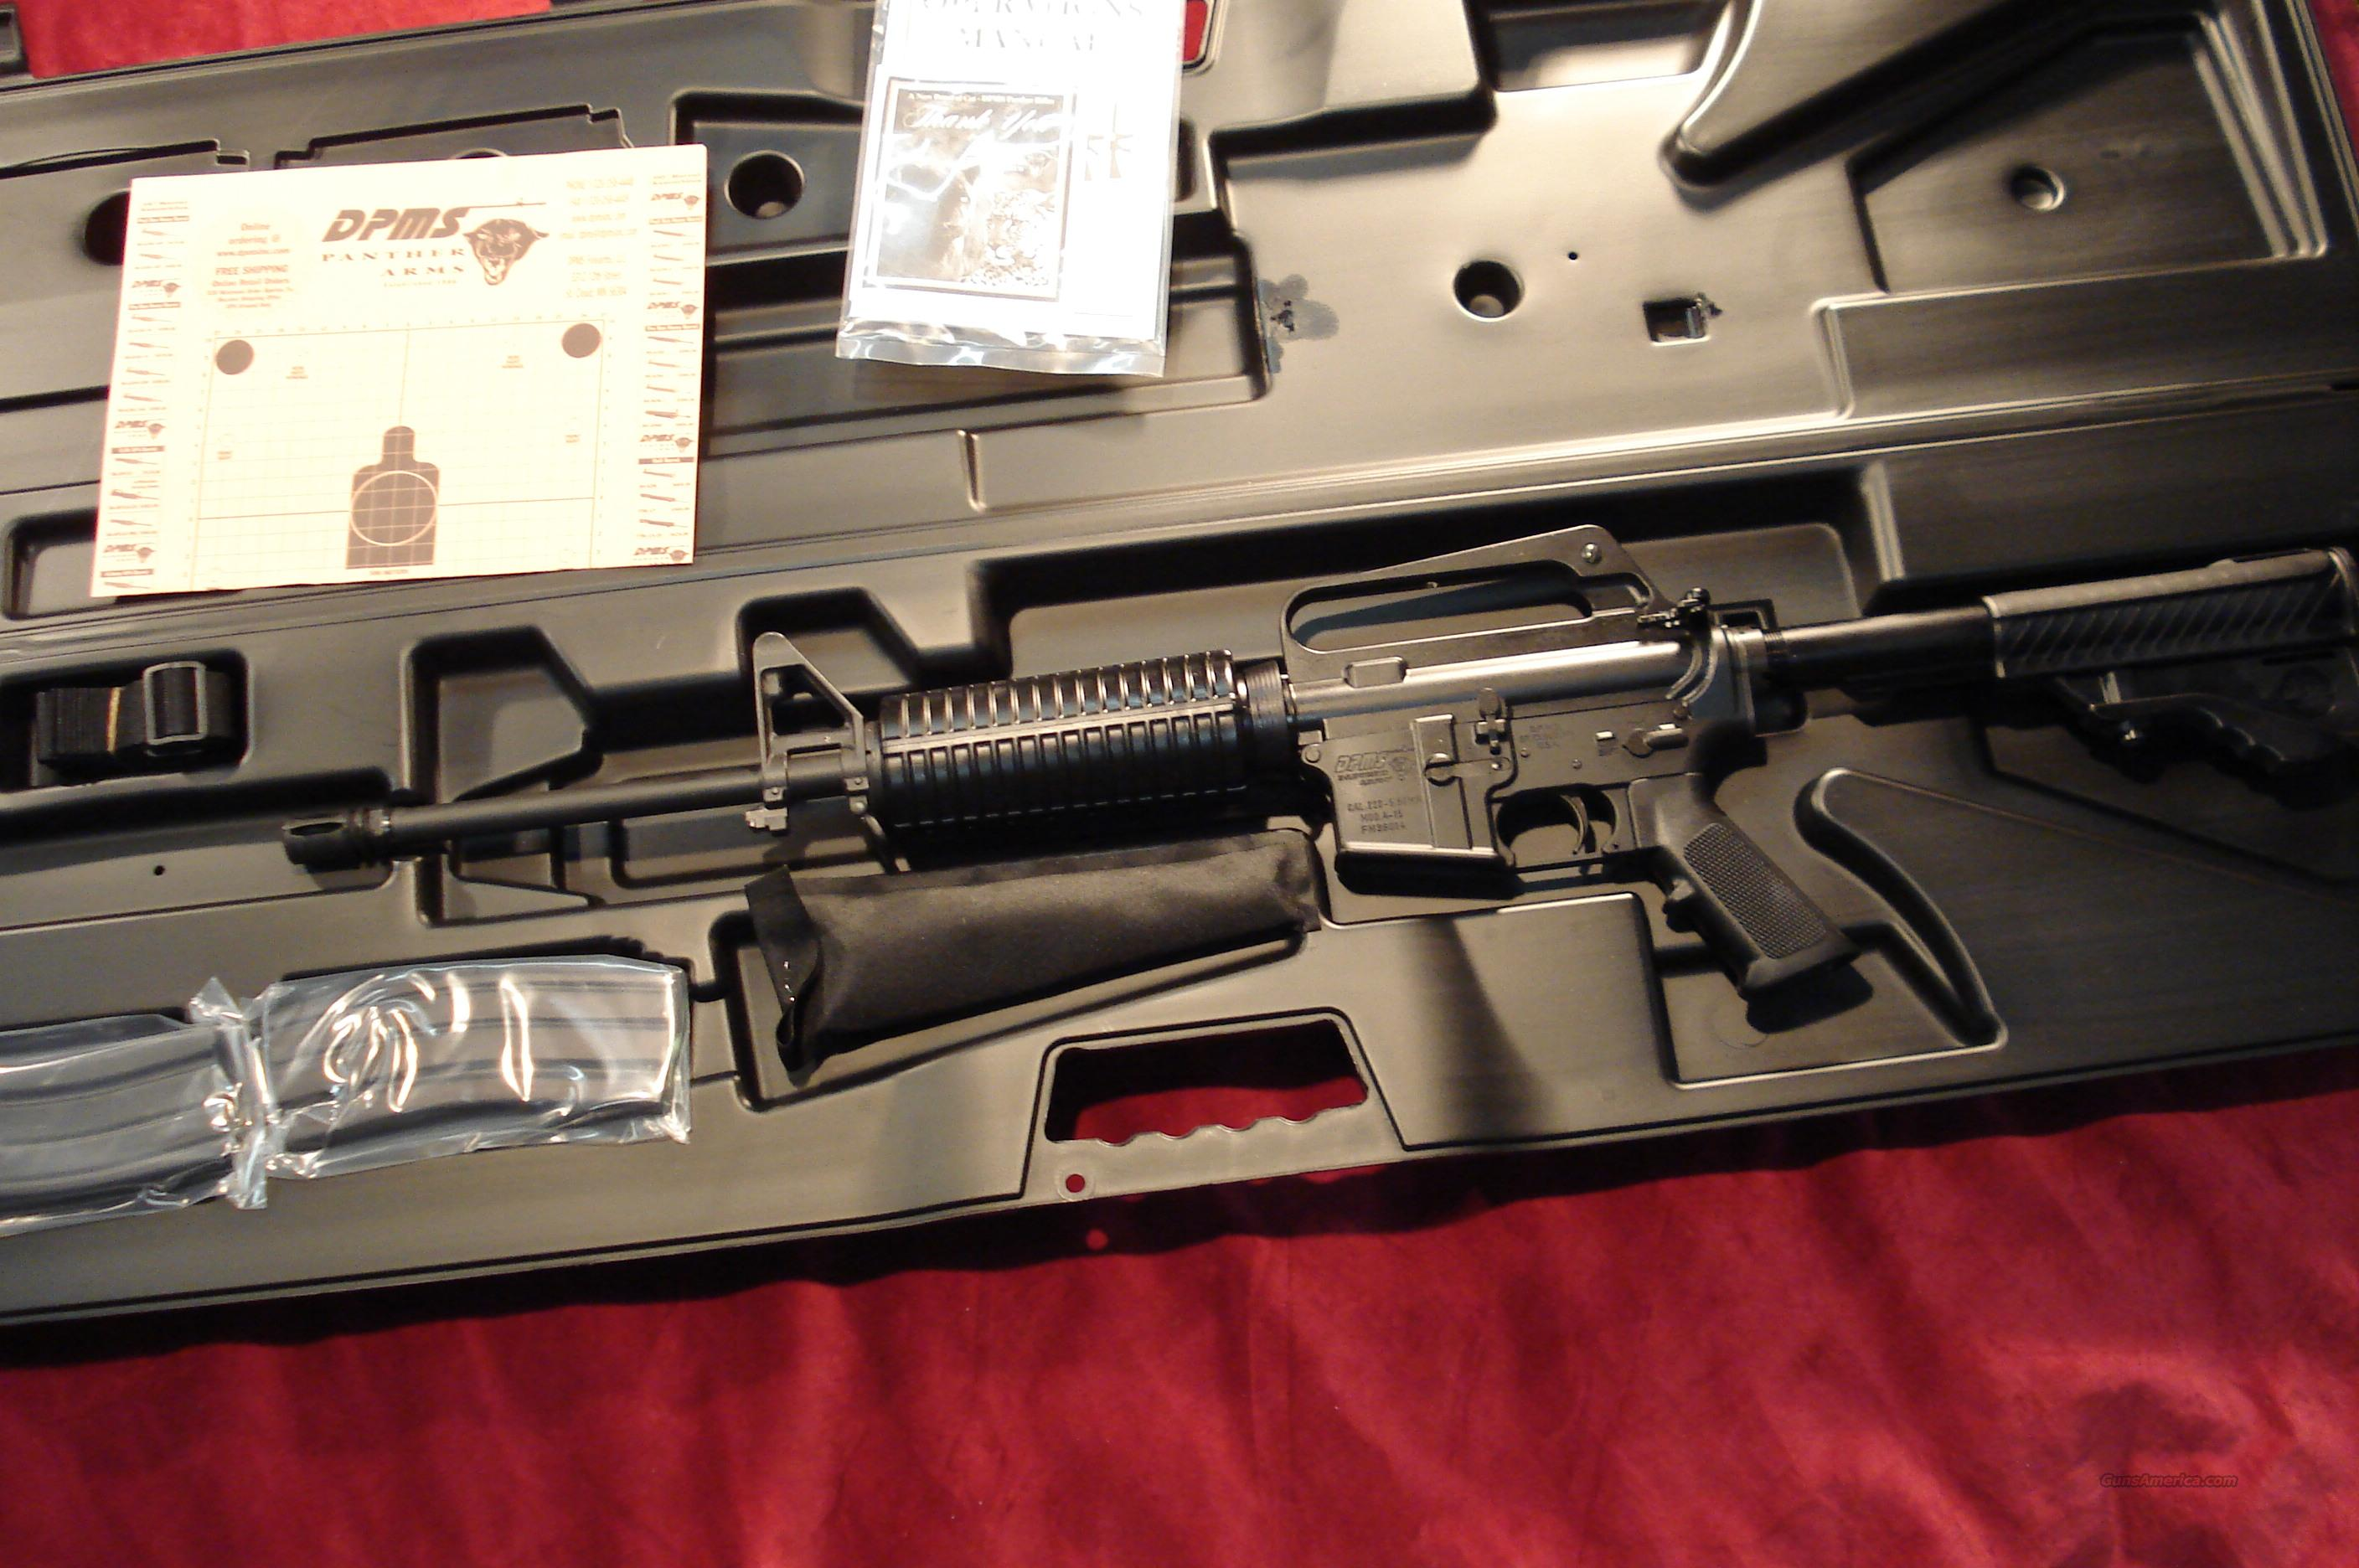 DPMS PANTHER LITE 16  223 CAL. NEW  Guns > Rifles > DPMS - Panther Arms > Complete Rifle